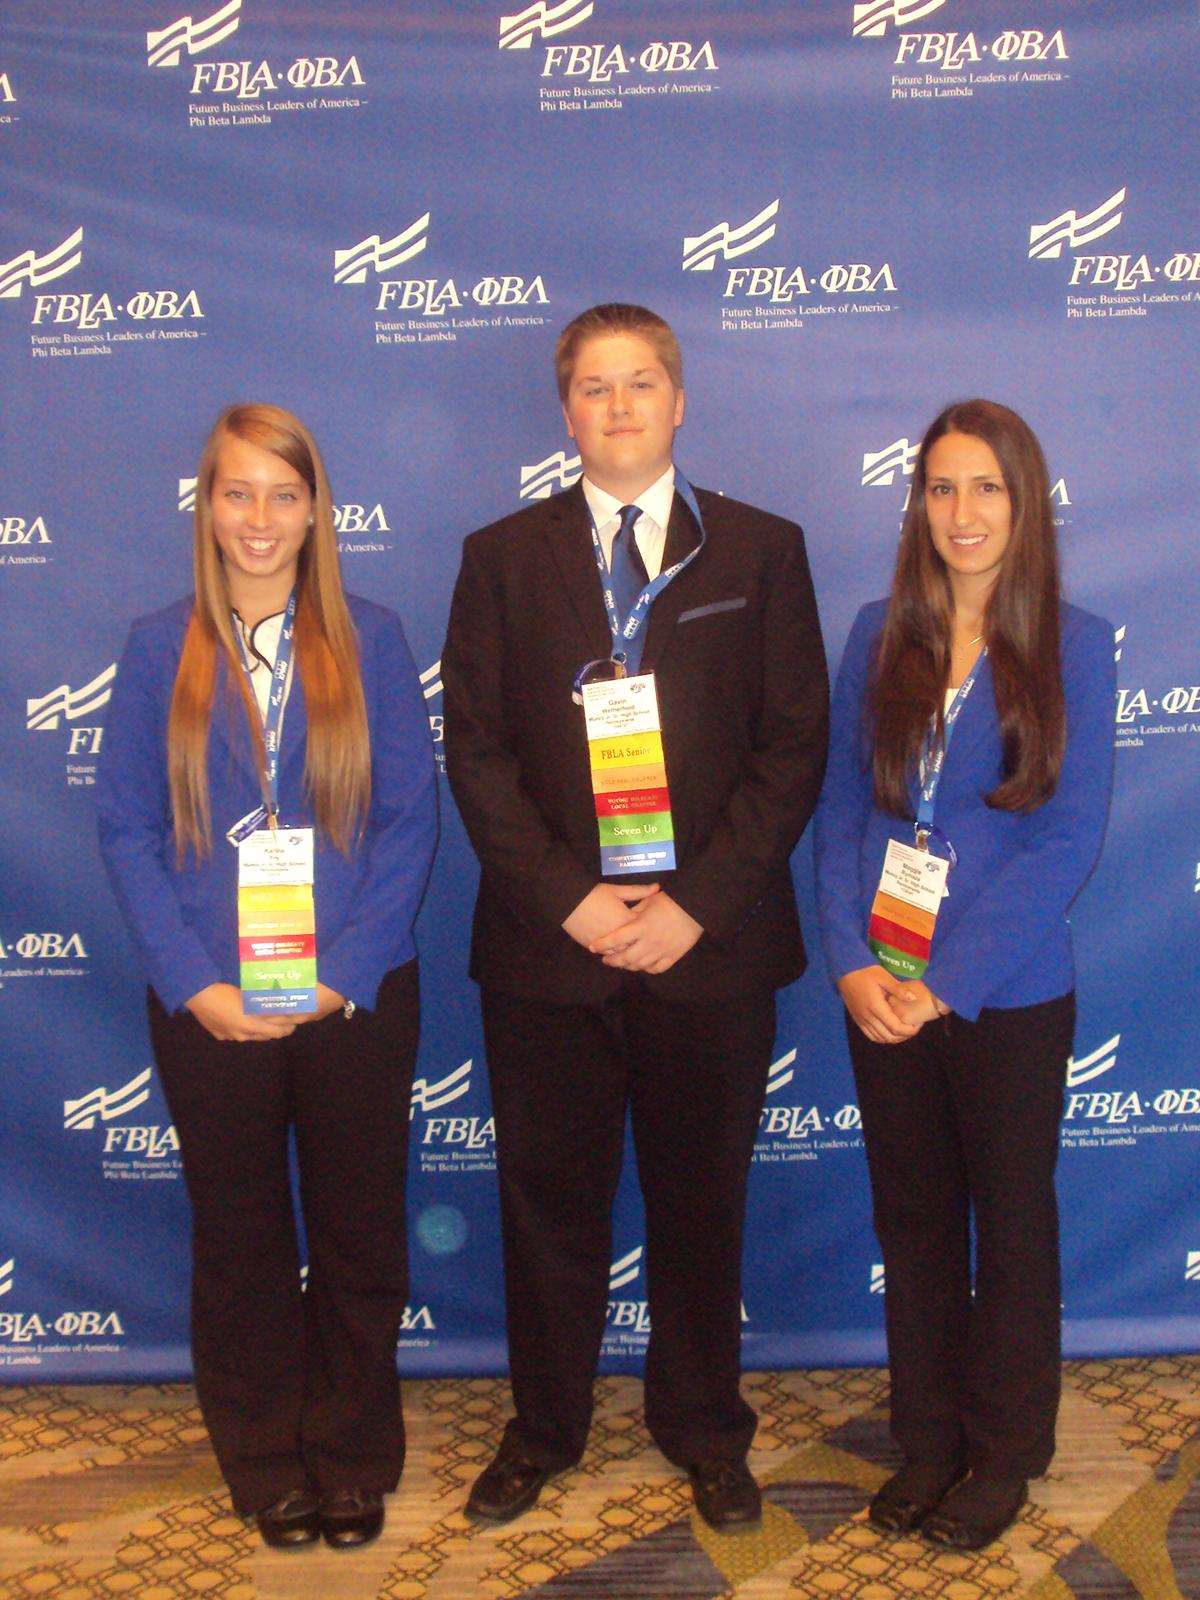 Way to go Muncy FBLA